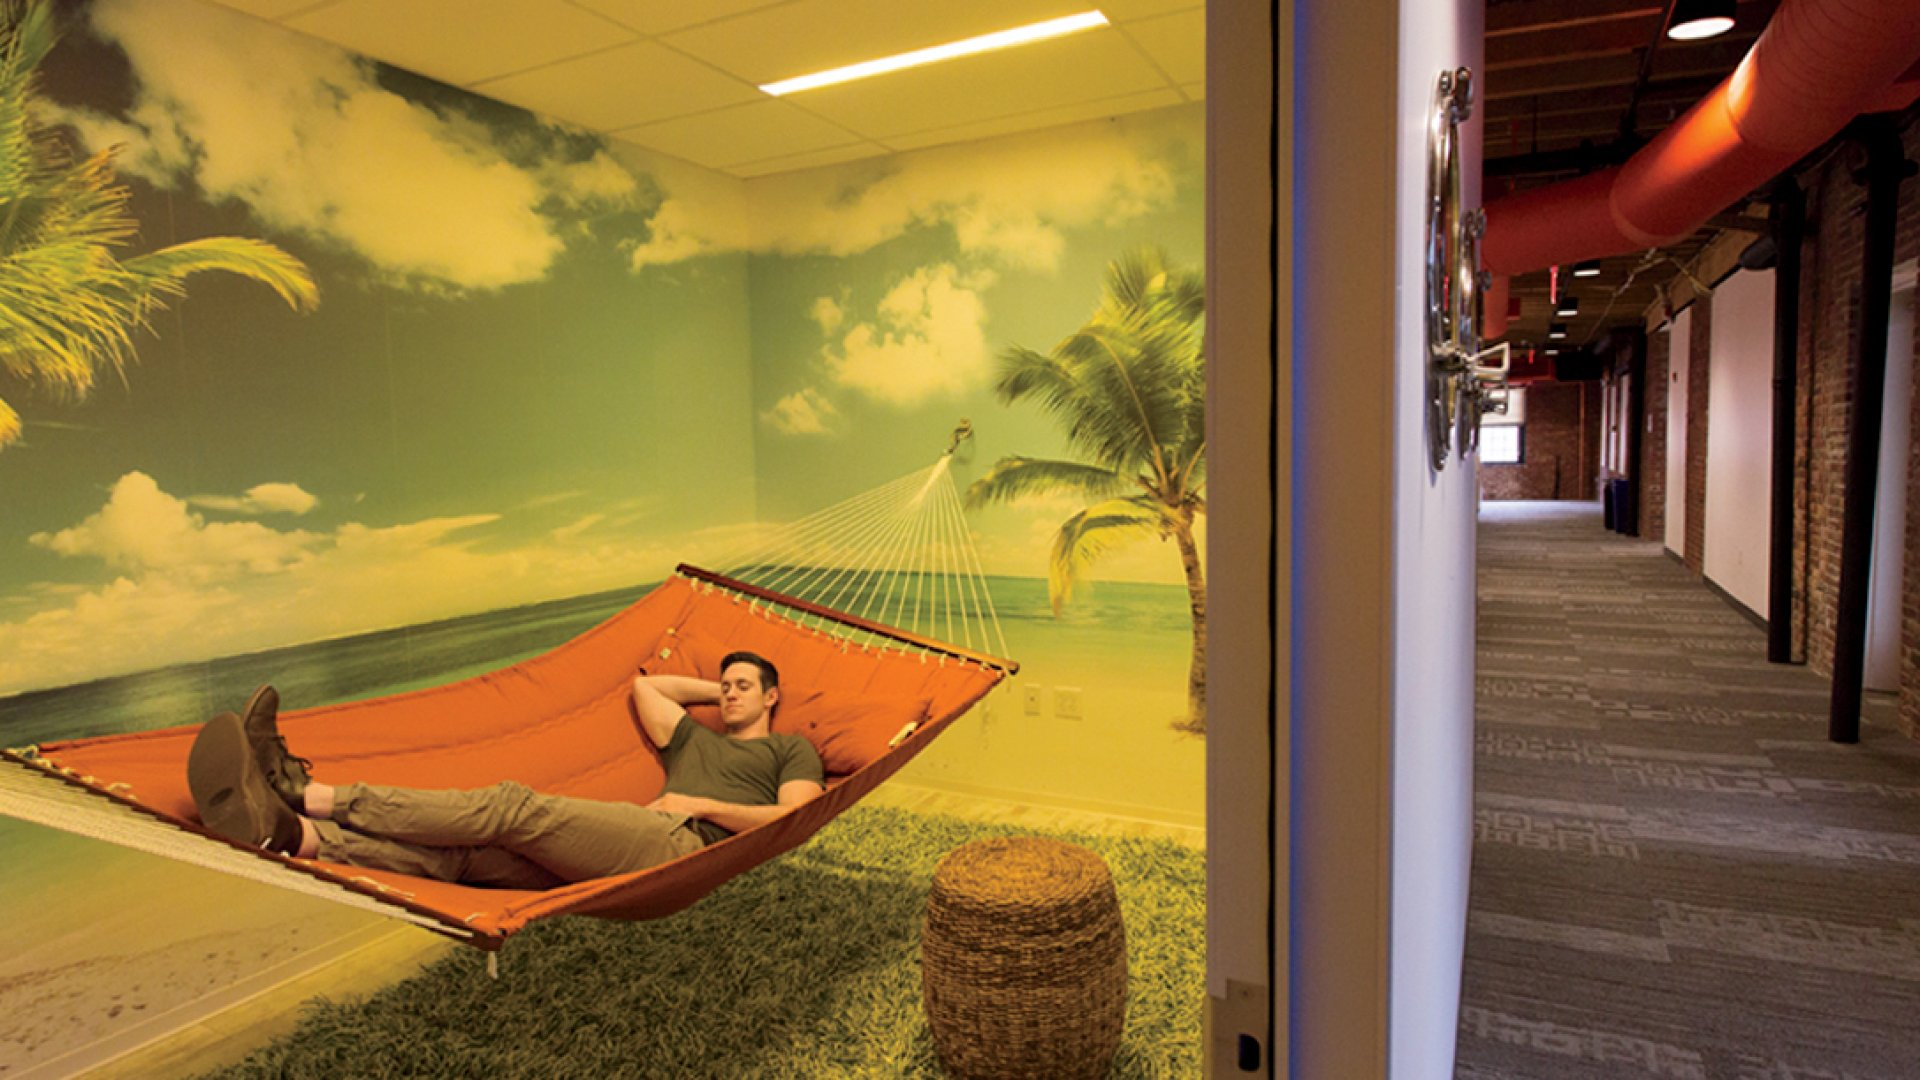 It's not just a nap - it's a total change of scene. HubSpot's new quiet room gives employees a peaceful beach background while they relax in hammocks.